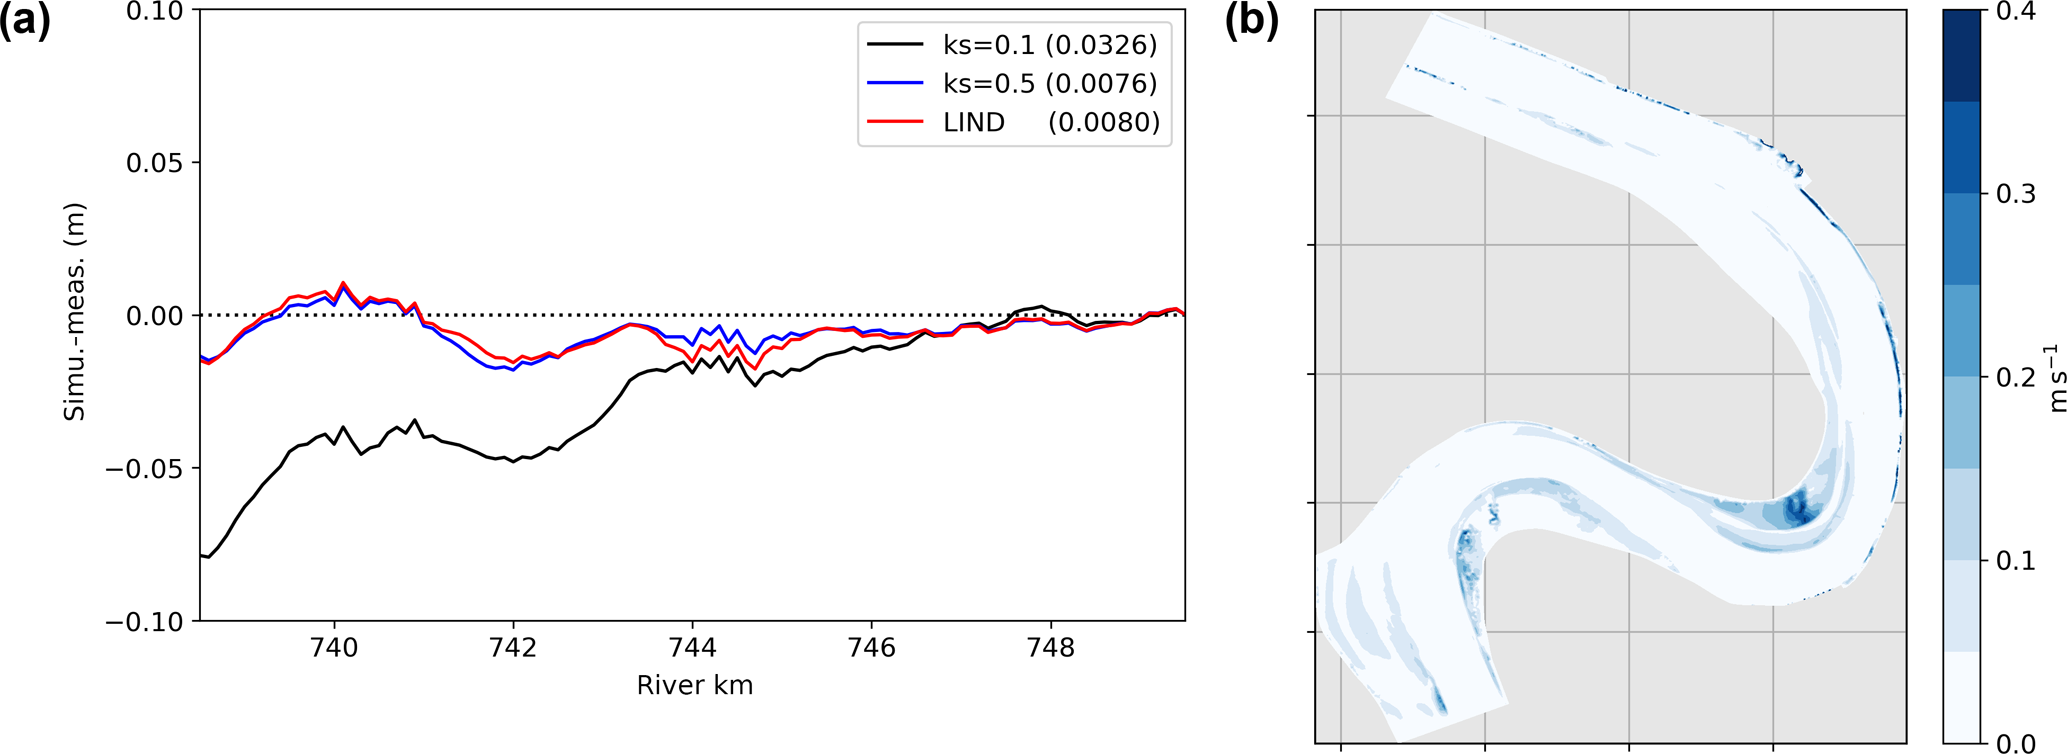 HESS - Uncertainty quantification of floodplain friction in